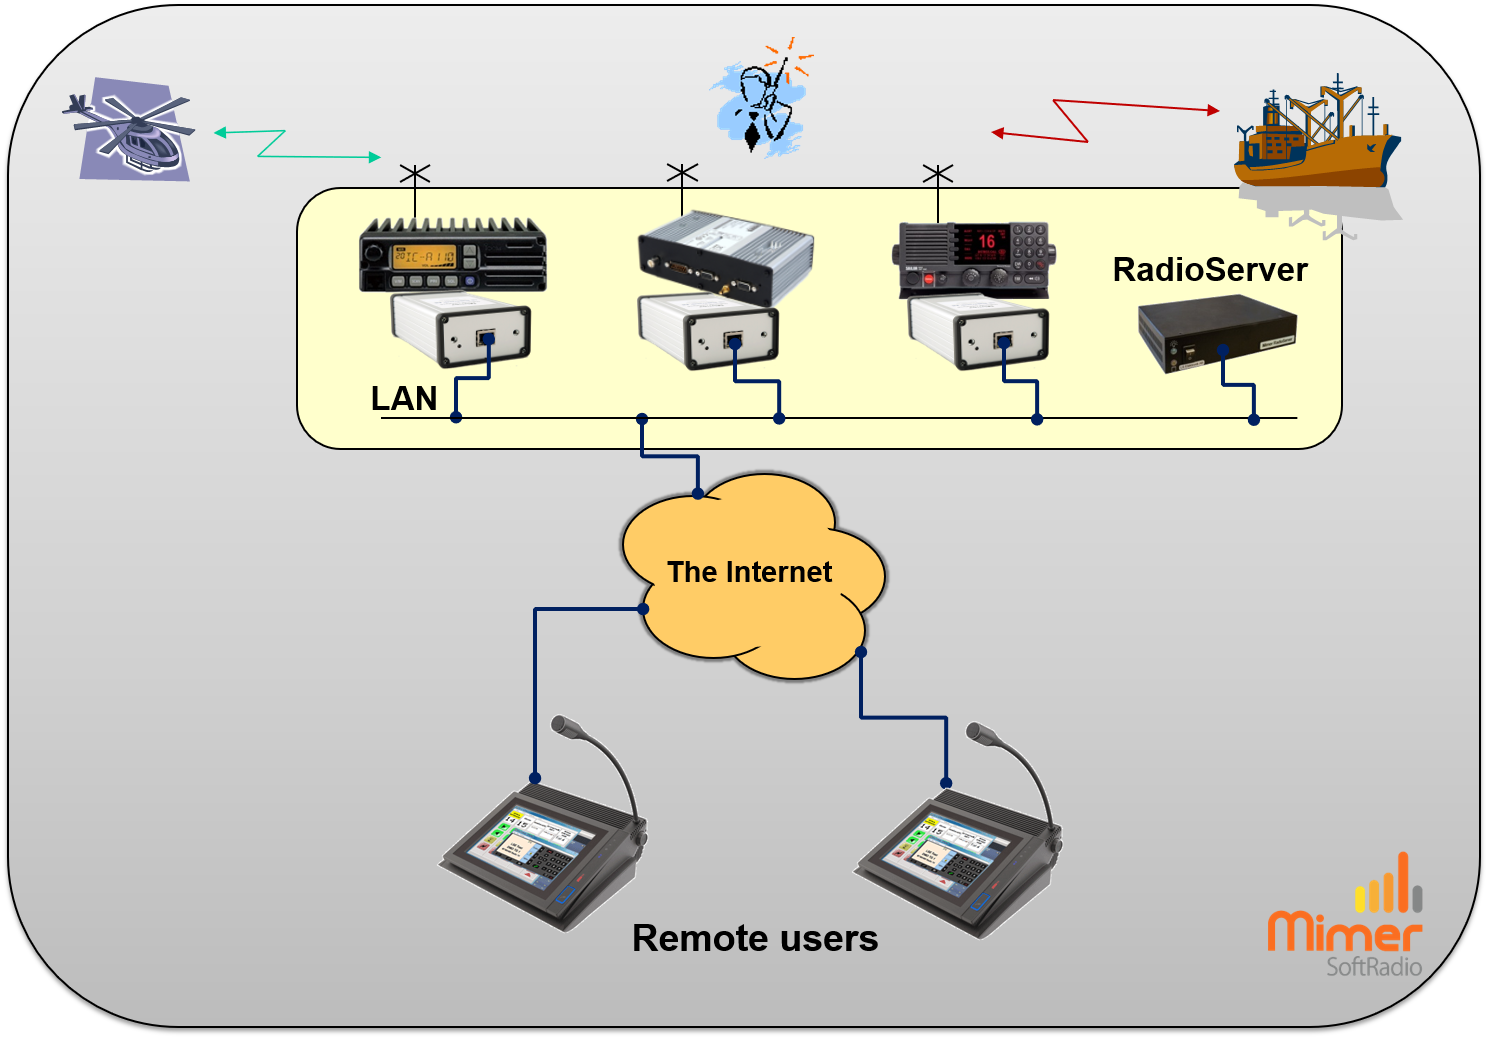 Remote operators connected through a RadioServer